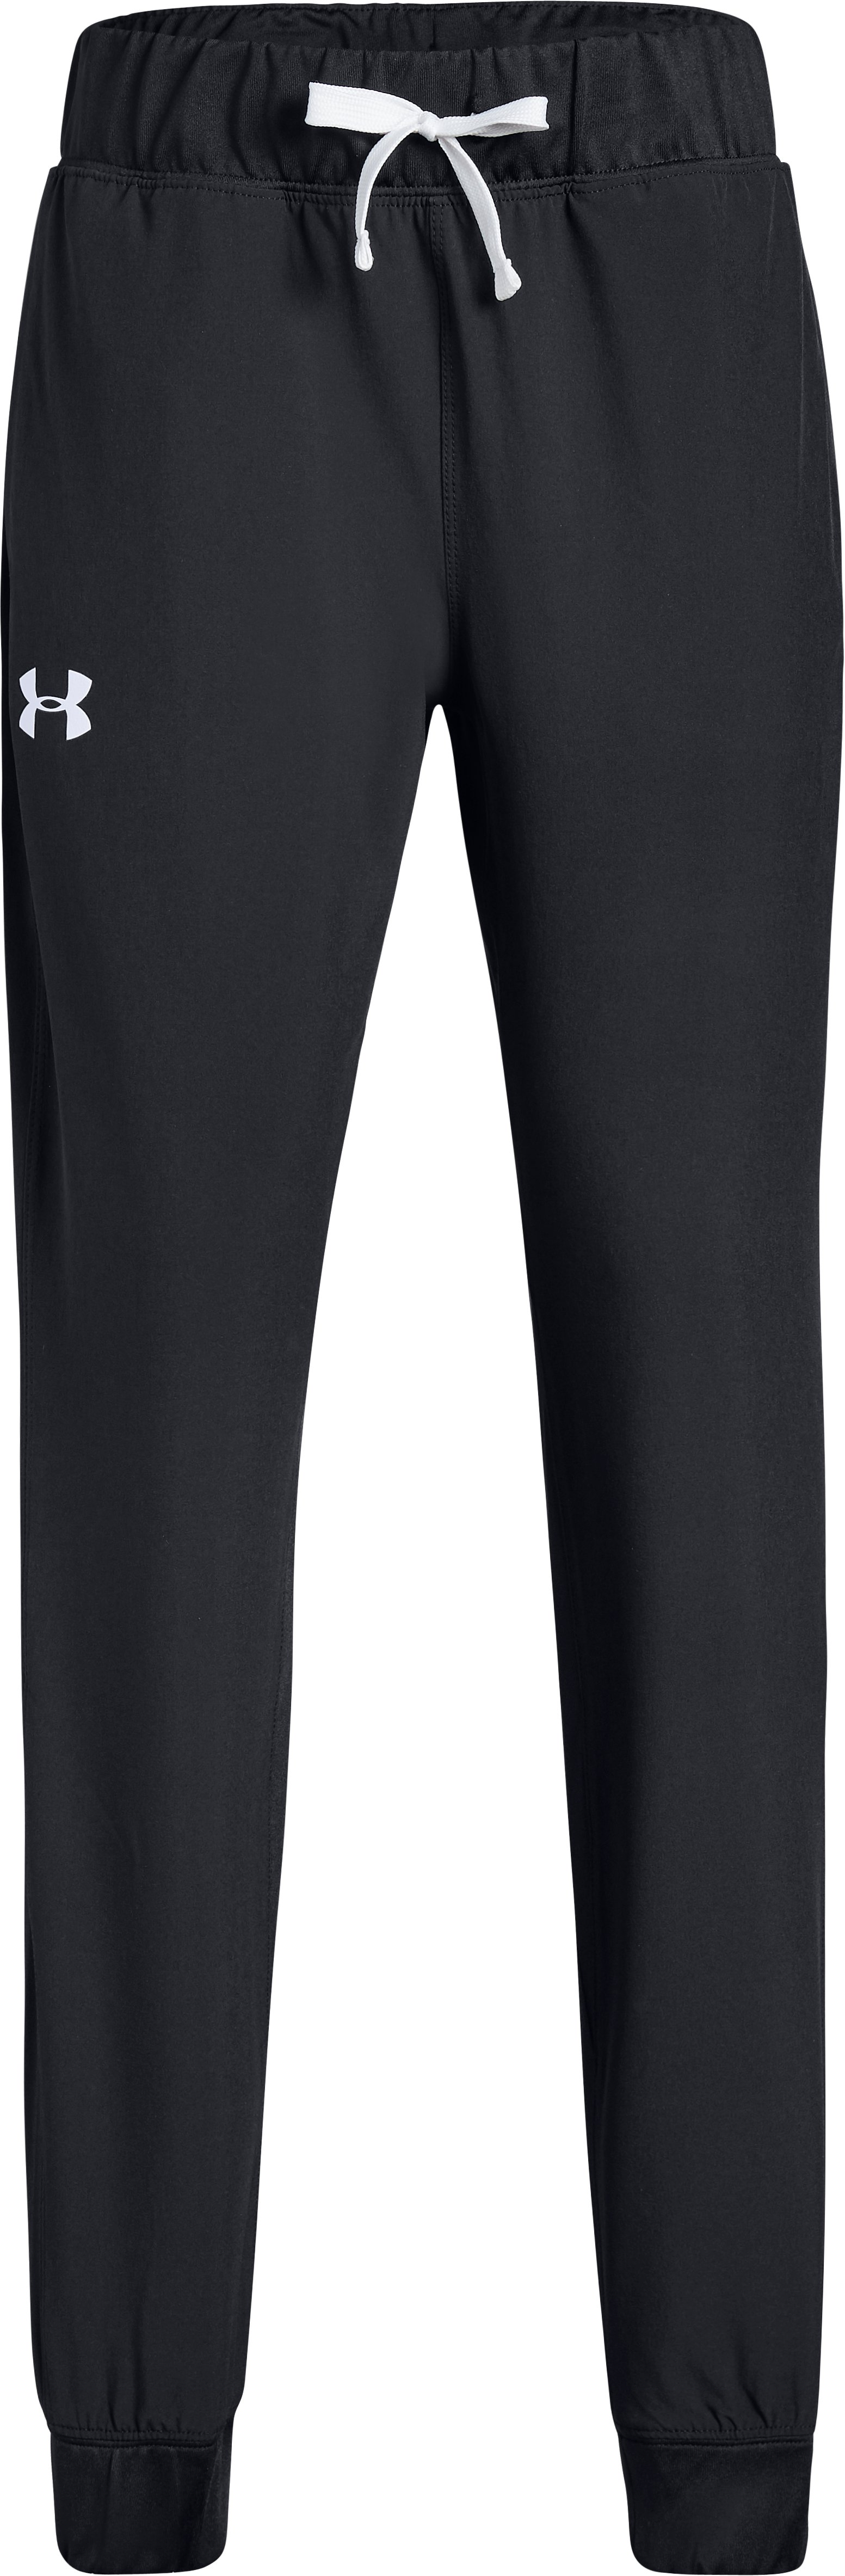 Girls' UA Woven Warm Up Pants, Black